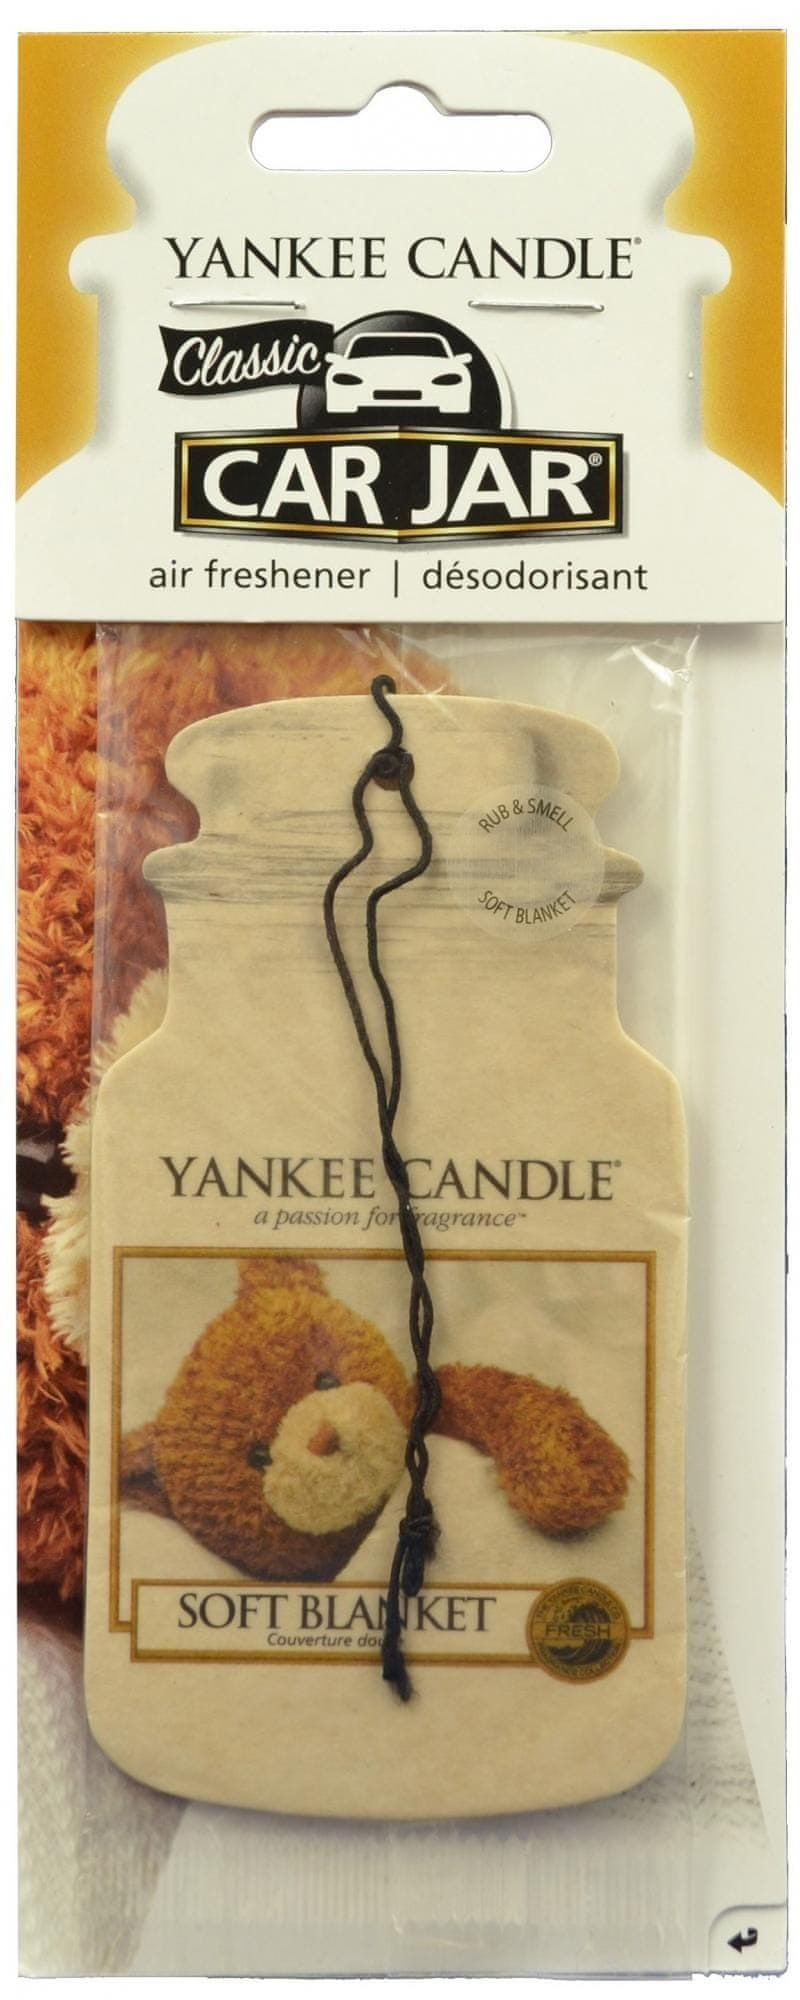 Yankee Candle Car Jar Soft Blanket papírová visačka do auta 1 ks